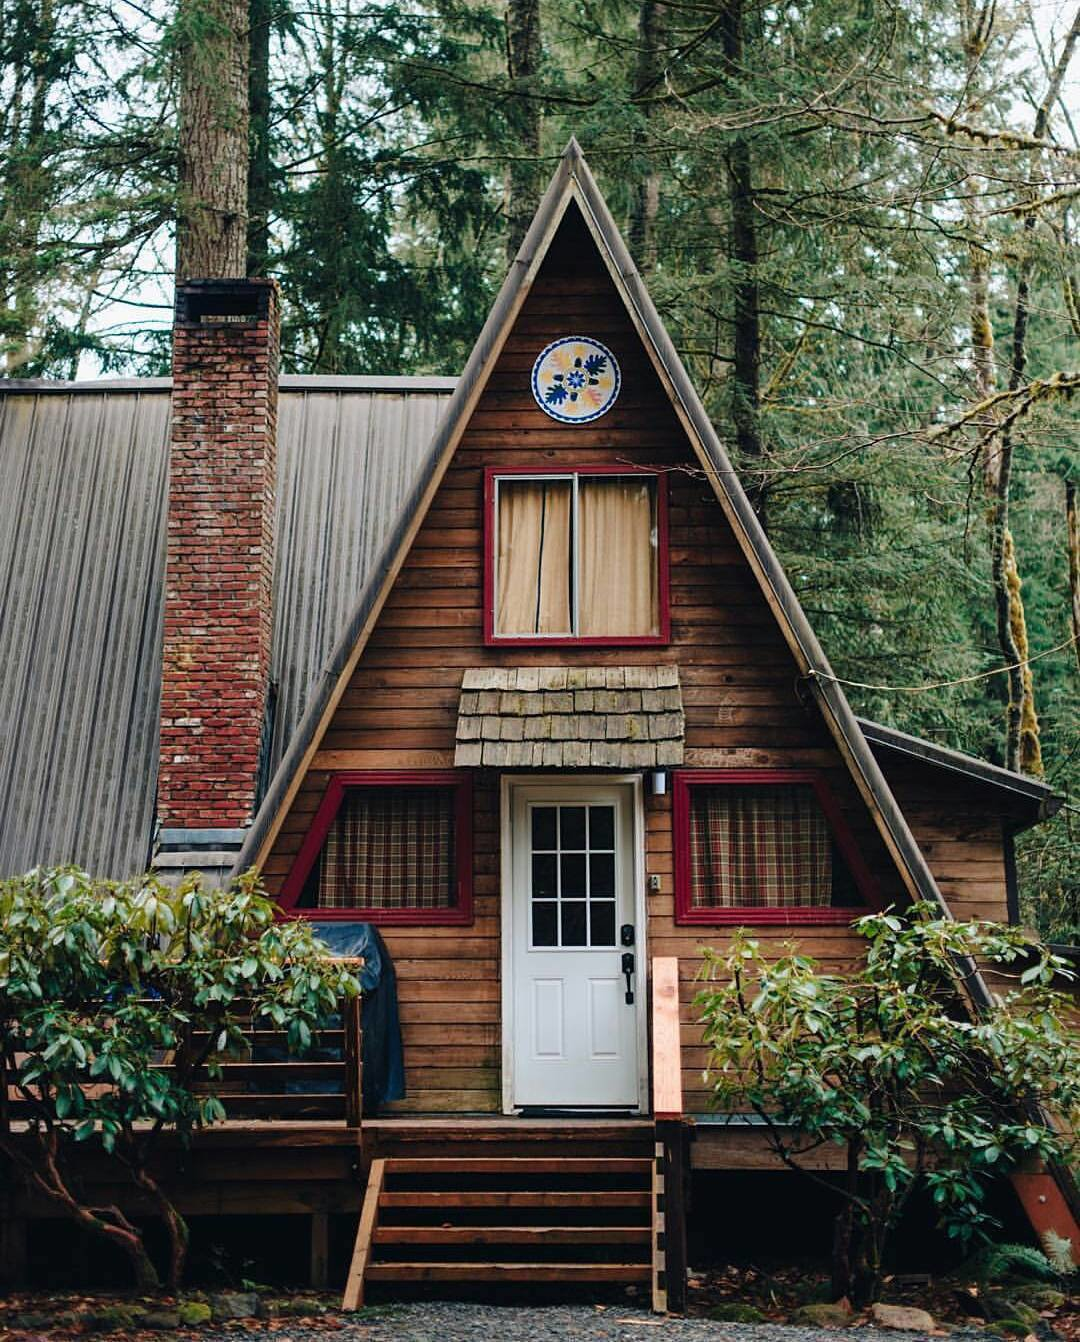 Photo 3 of 14 in 12 Cabin Escapes to Inspire Your Next Weekend Getaway